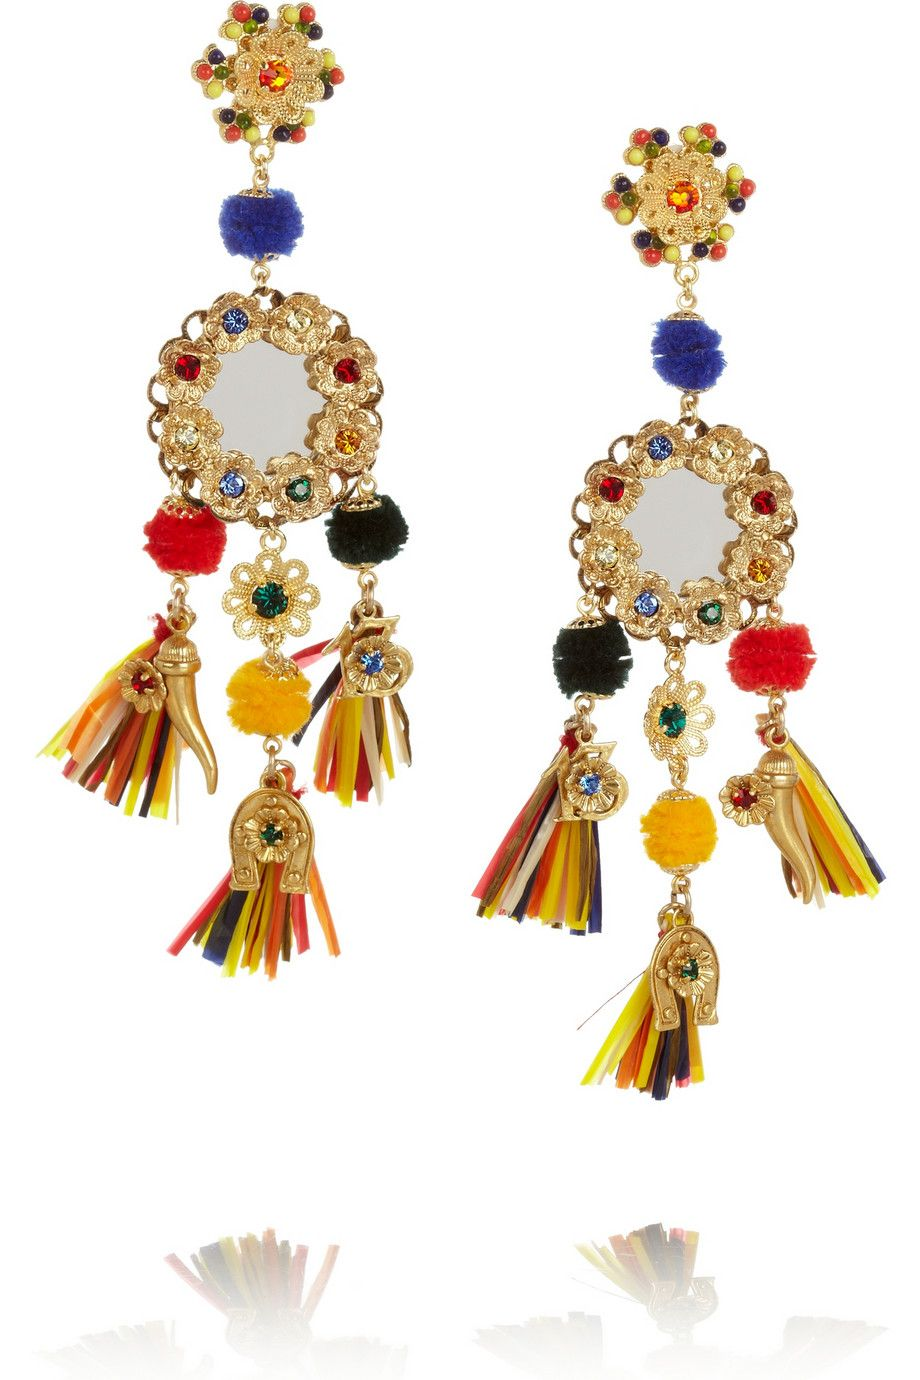 Dolce & Gabbana | Tasseled crystal clip earrings - just like at the spring summer 2013 show! - for 1,2000 dollars